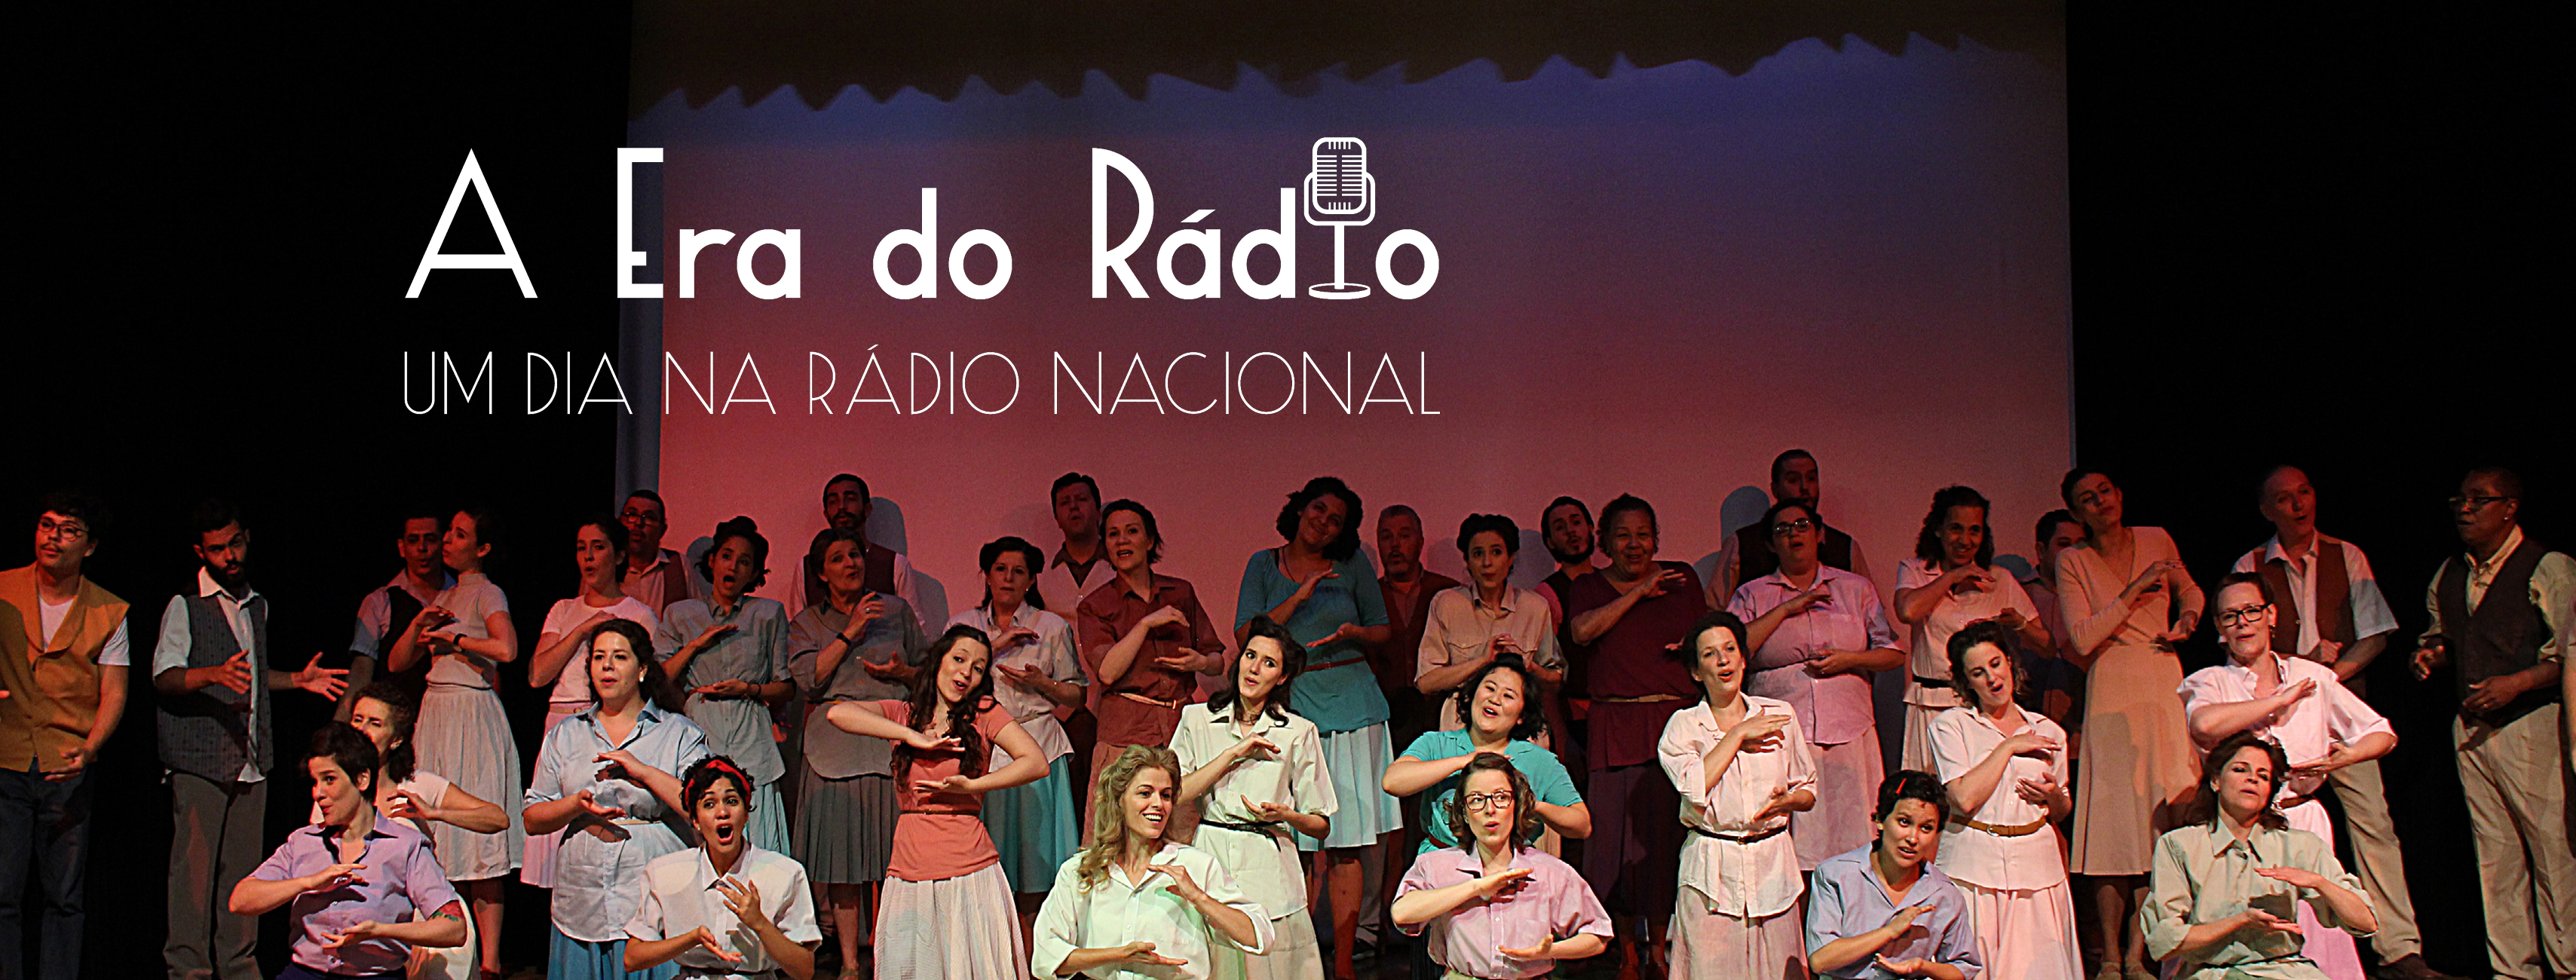 capa evento fb_a era do rádio5